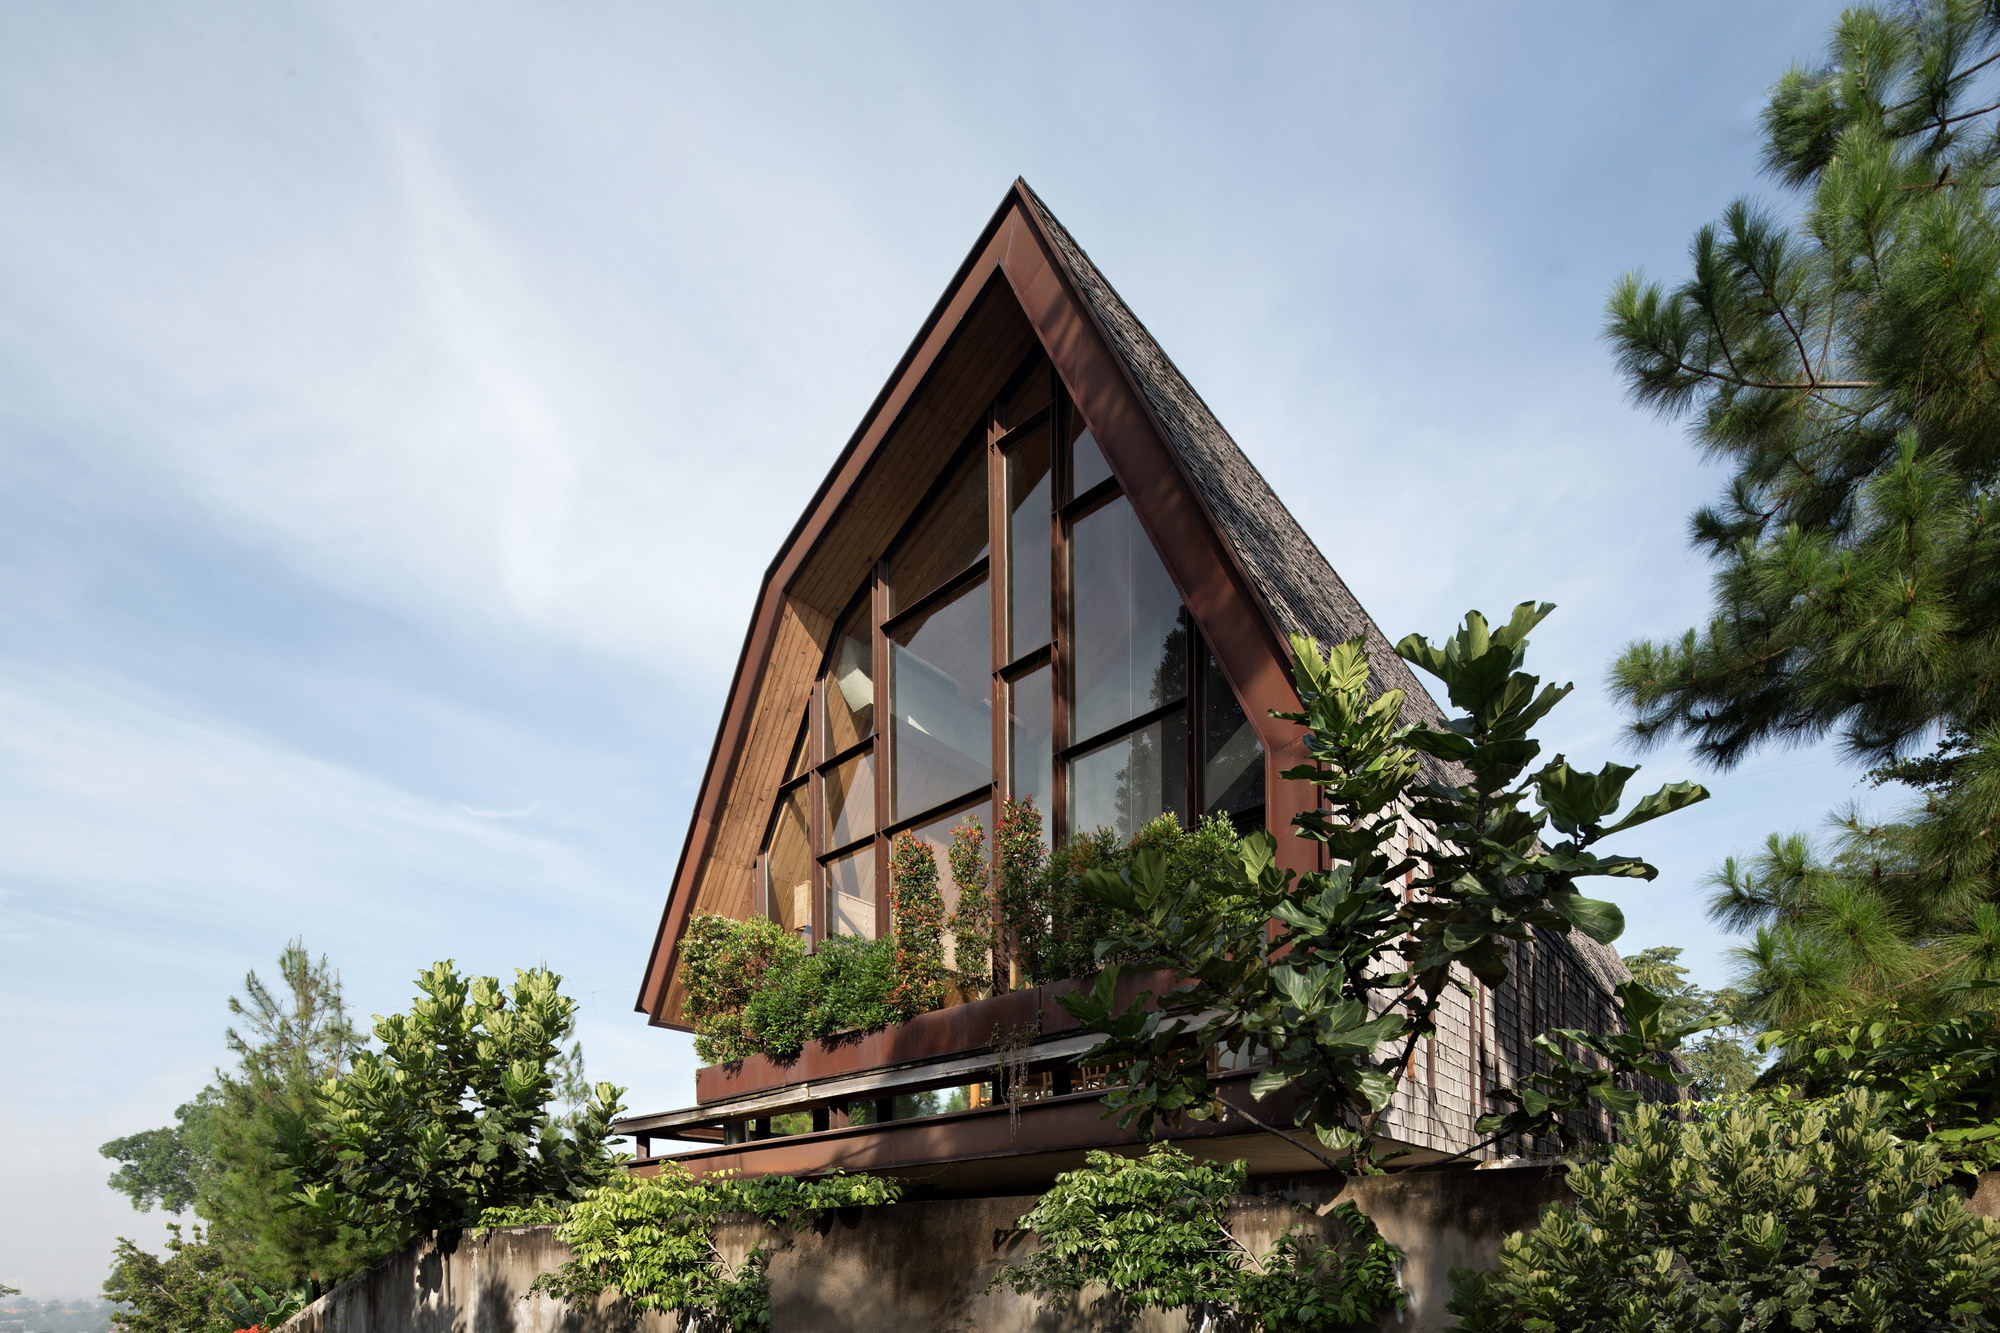 EH House in Bandung, Indonesia by Andramatin